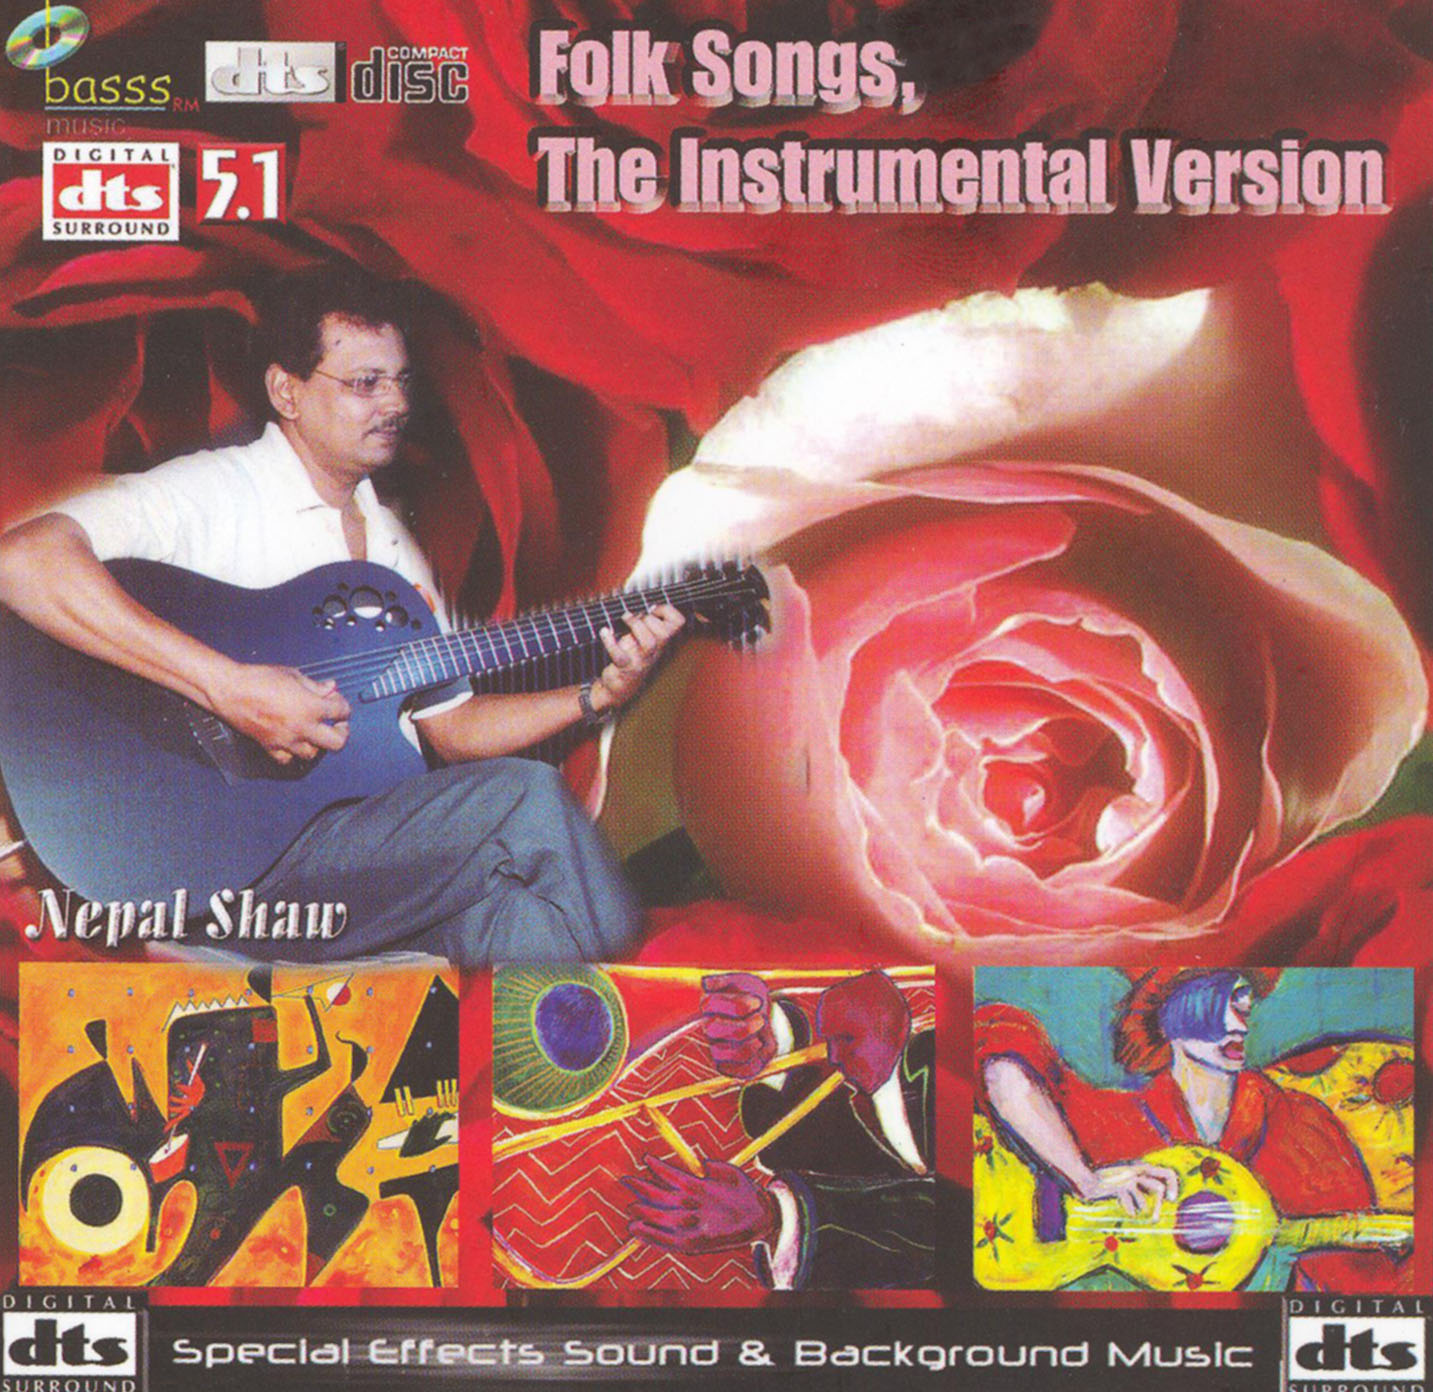 Nepal Shaw: Folk Songs - The Instrumental Version